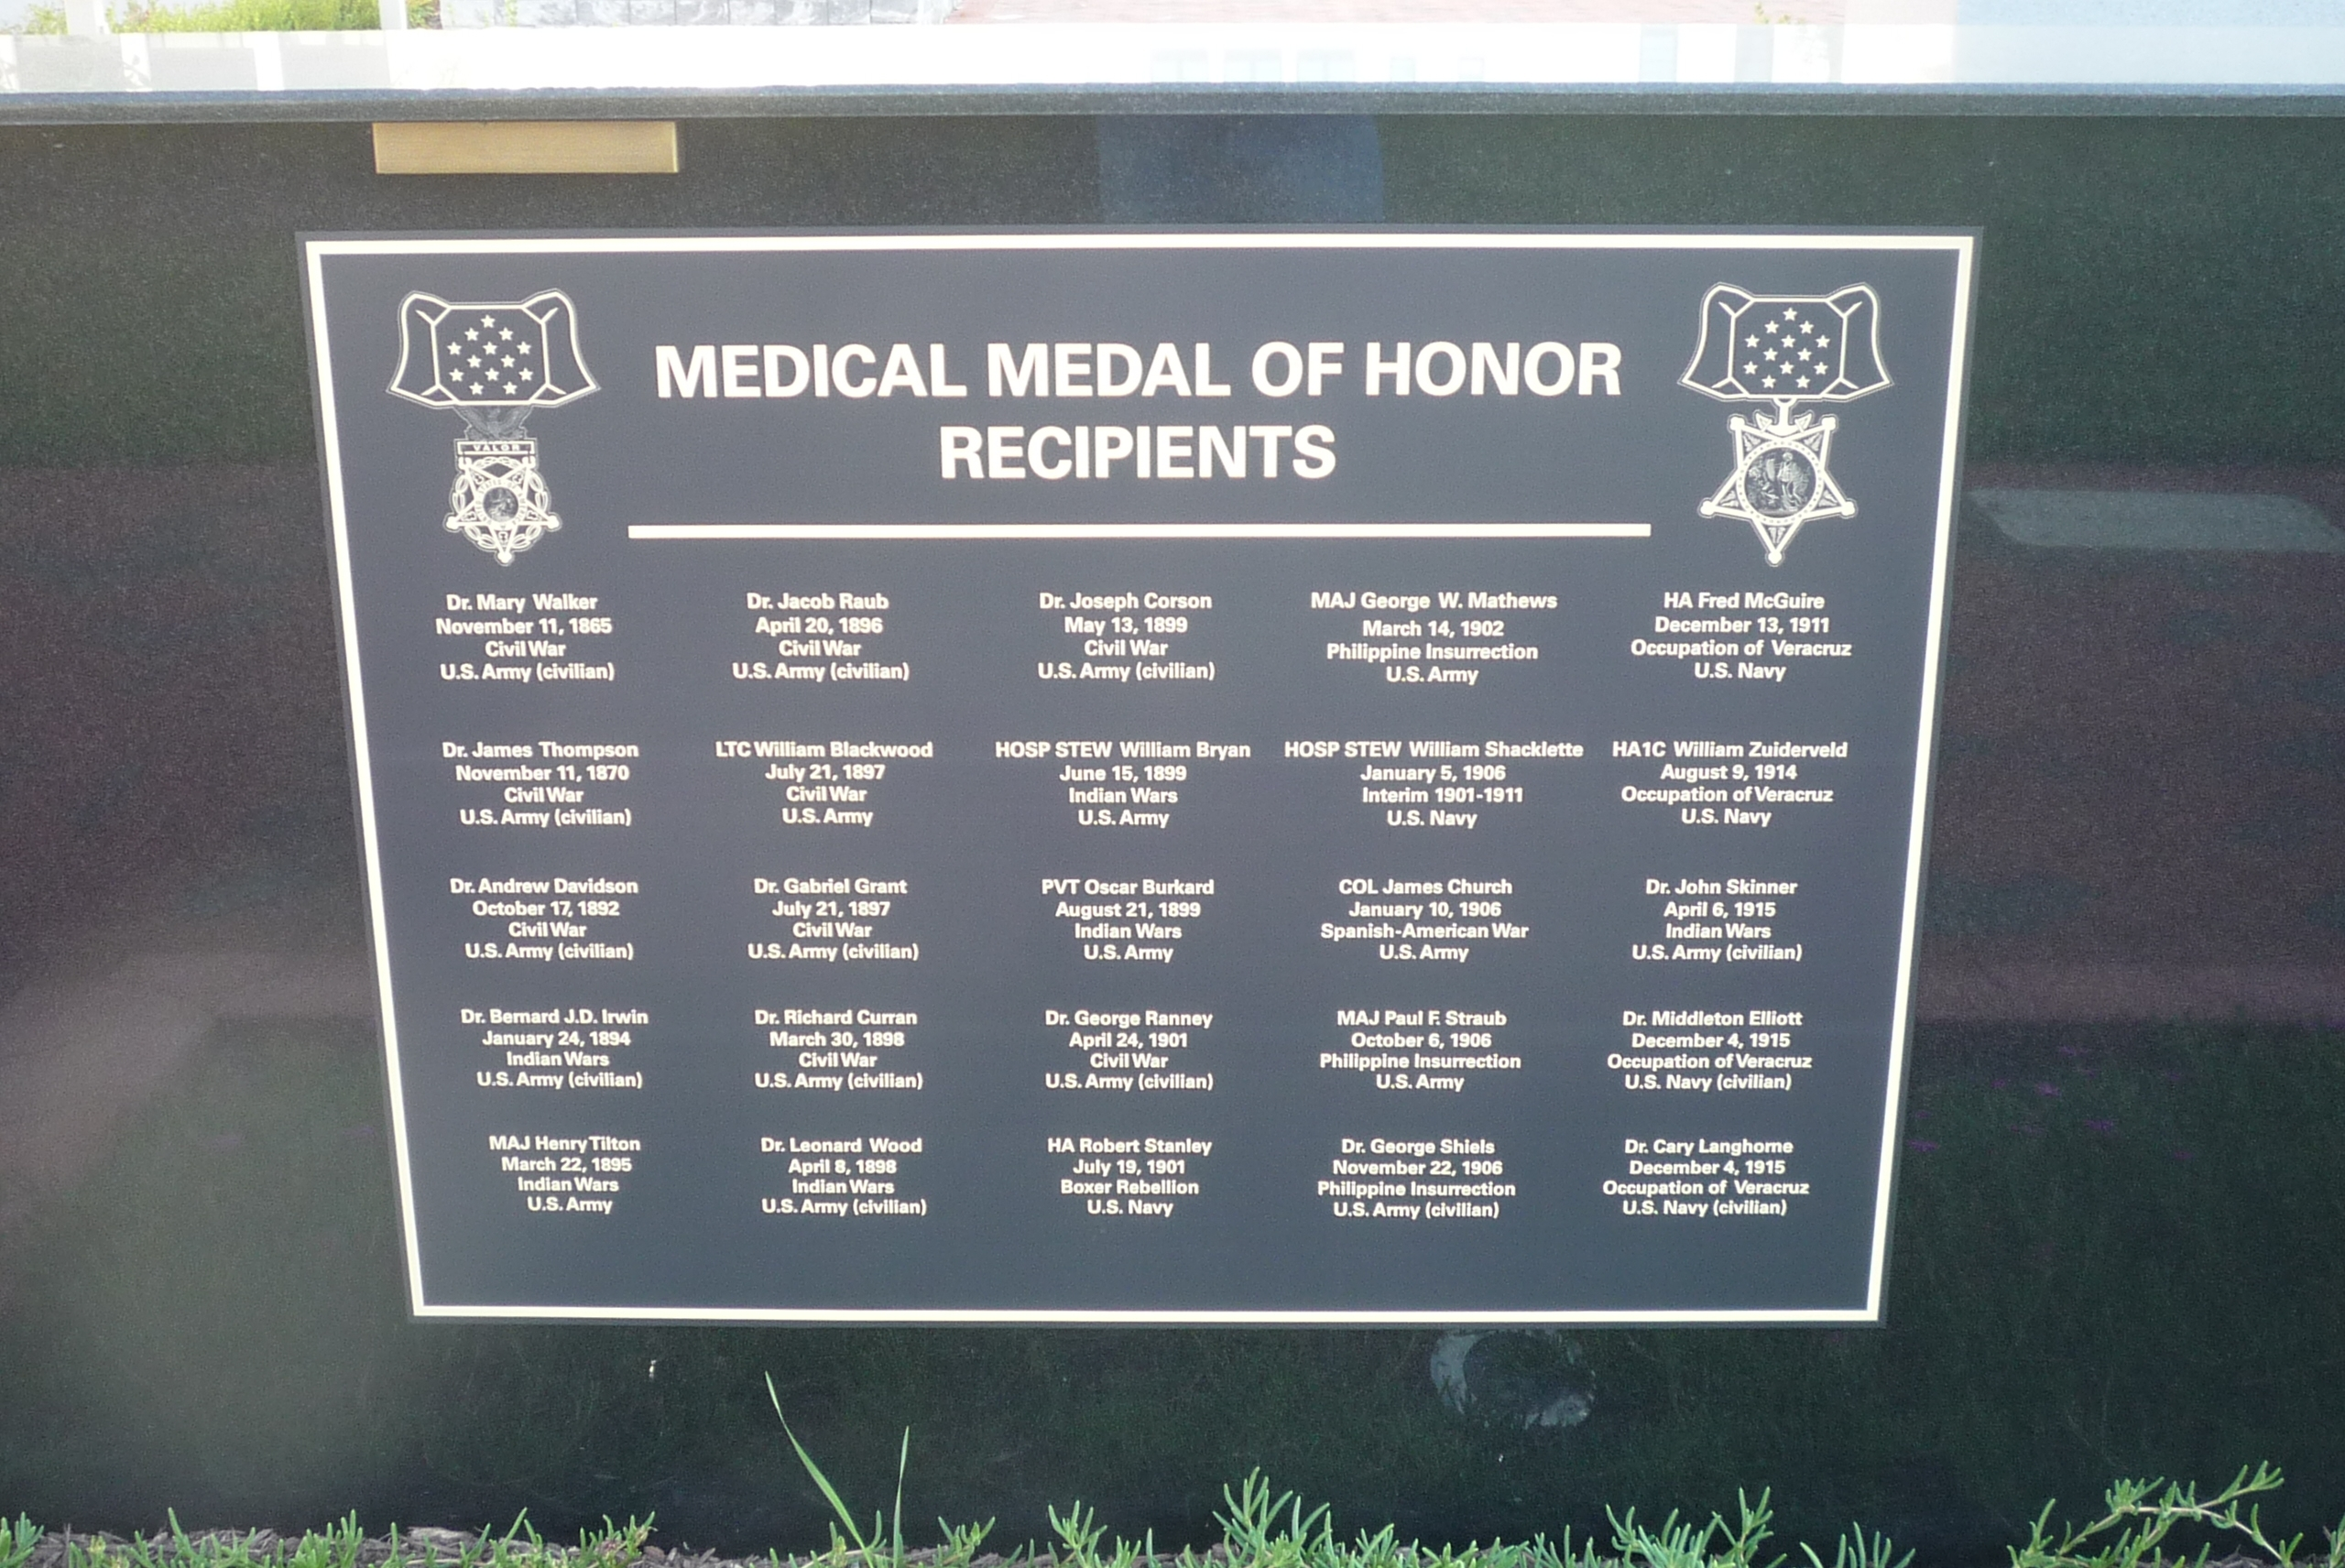 Medical Medal of Honor Recipients - Panel 1